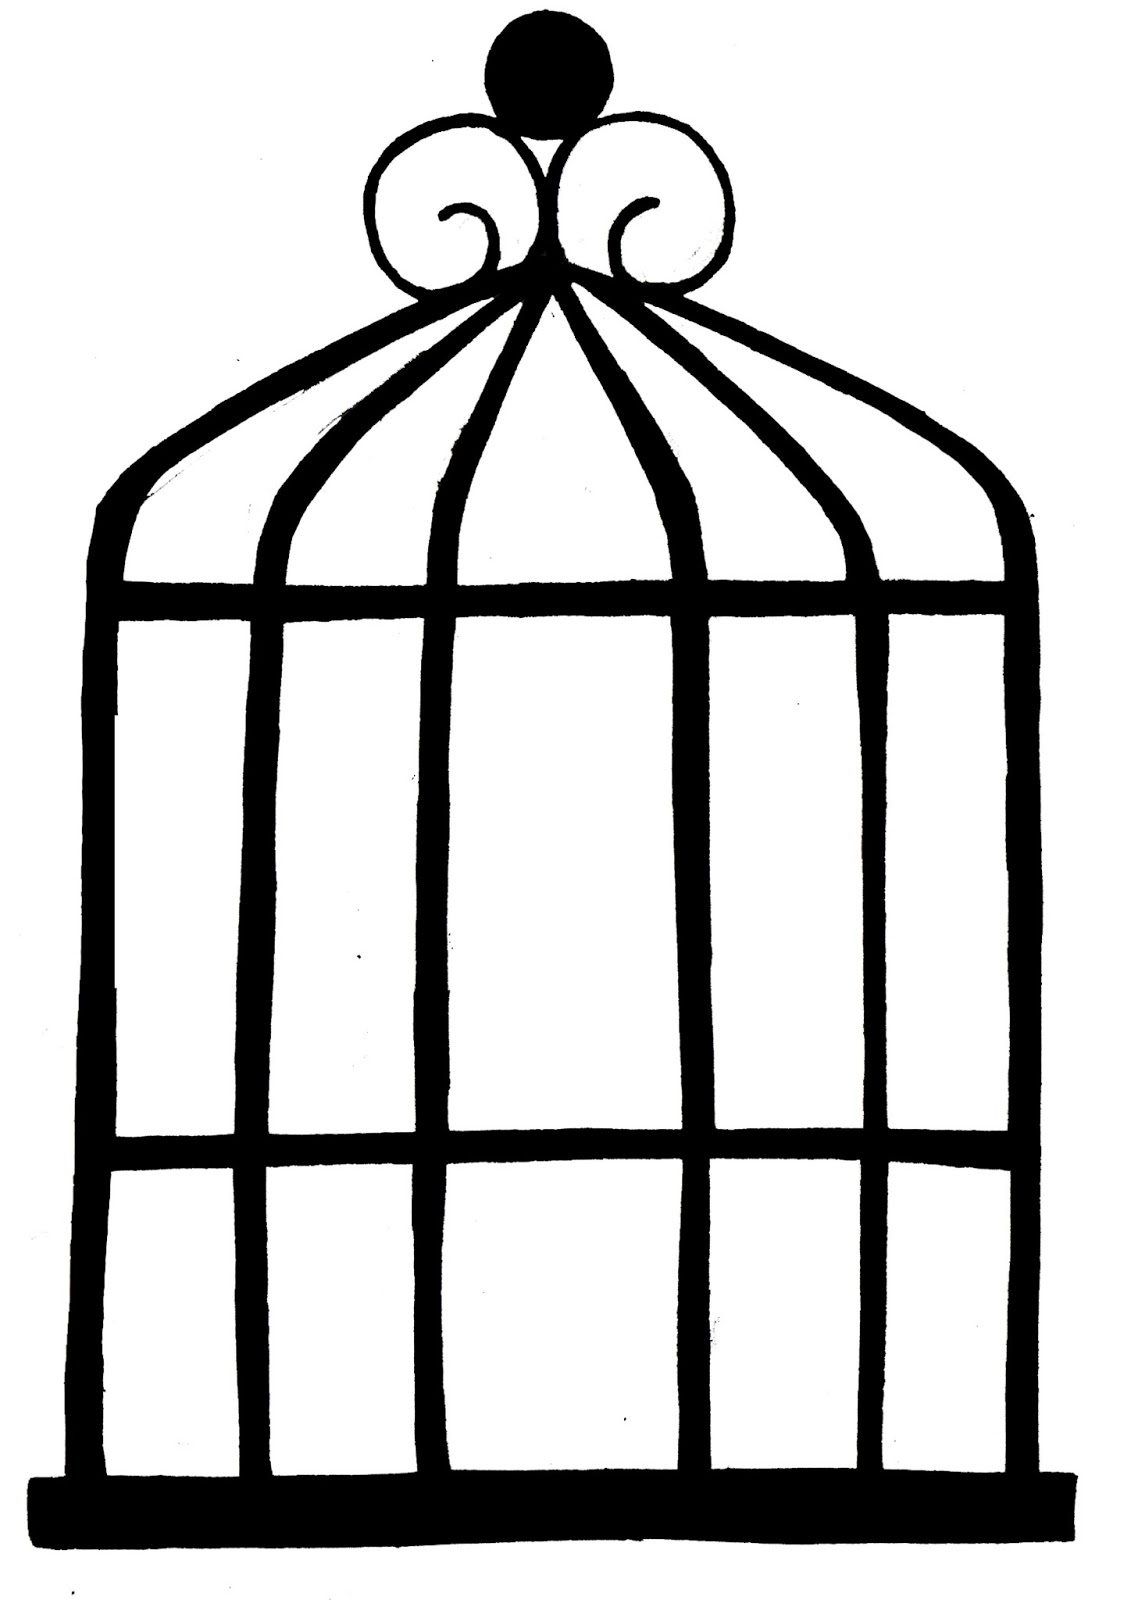 Parrot clipart cage Images Bird Pictures art Simple